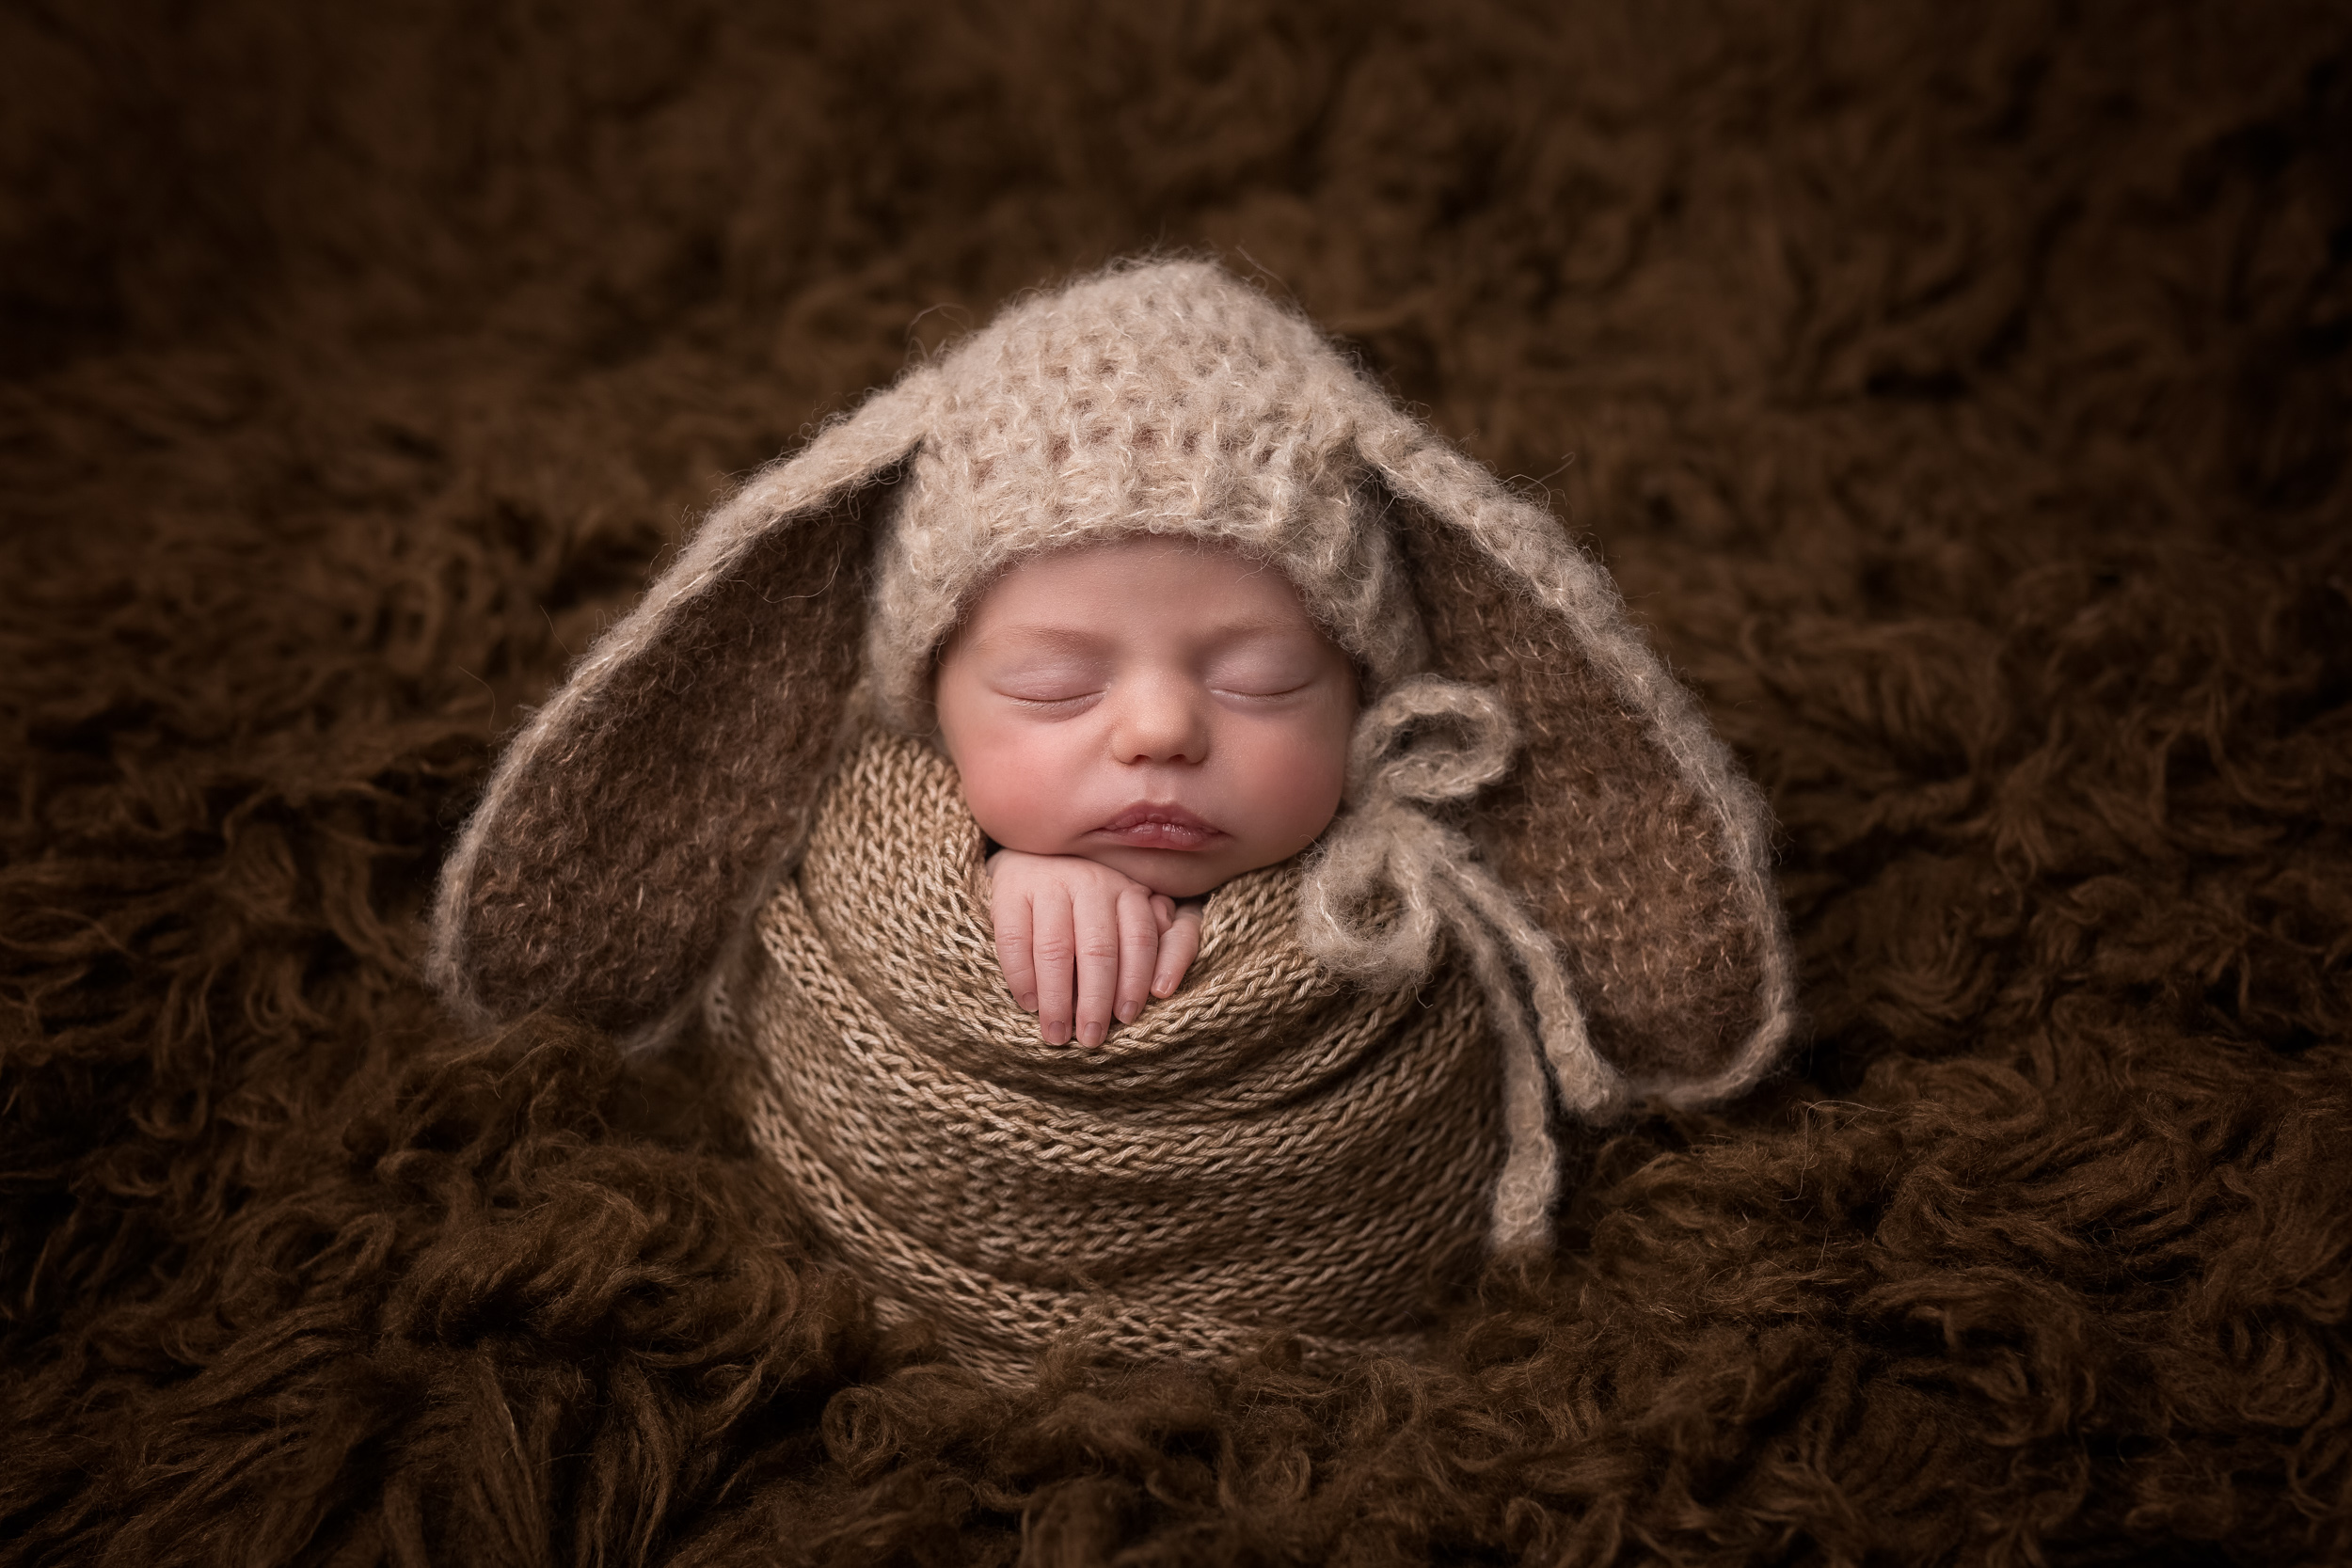 Award winning newborn photo of a baby with bunny wars on by Cheshire newborn photographer in Sandbach